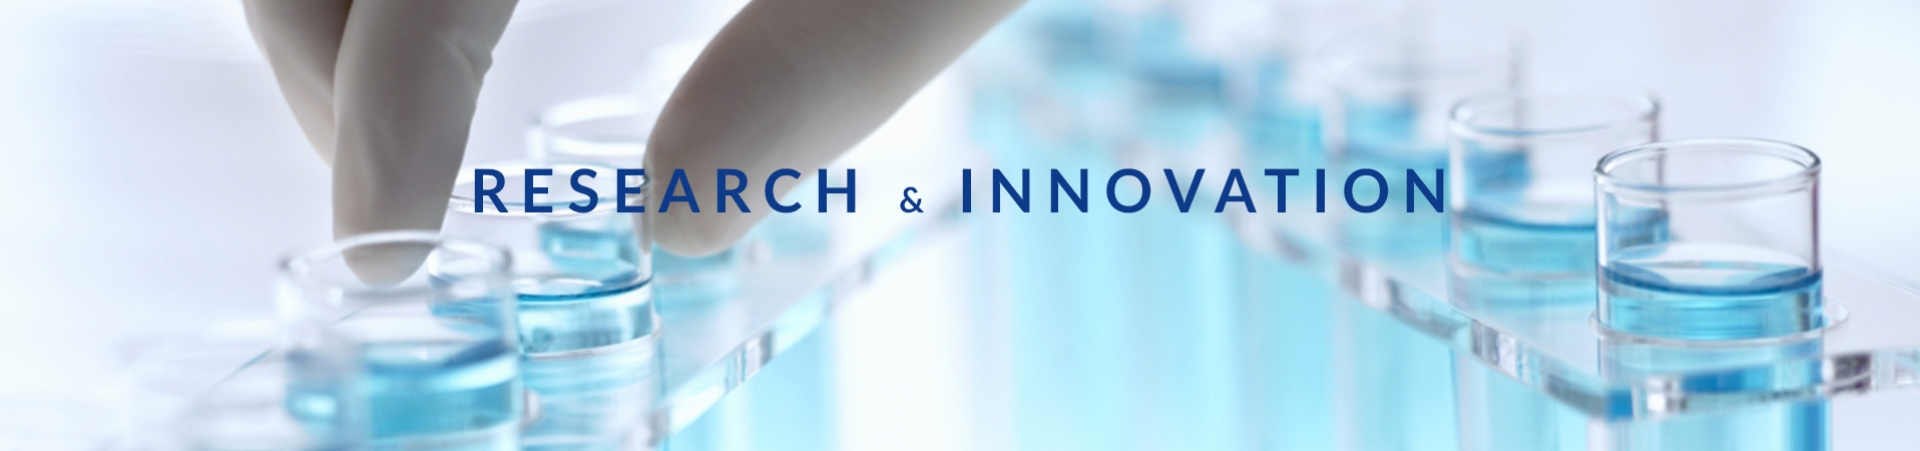 research-innovation-banner_0